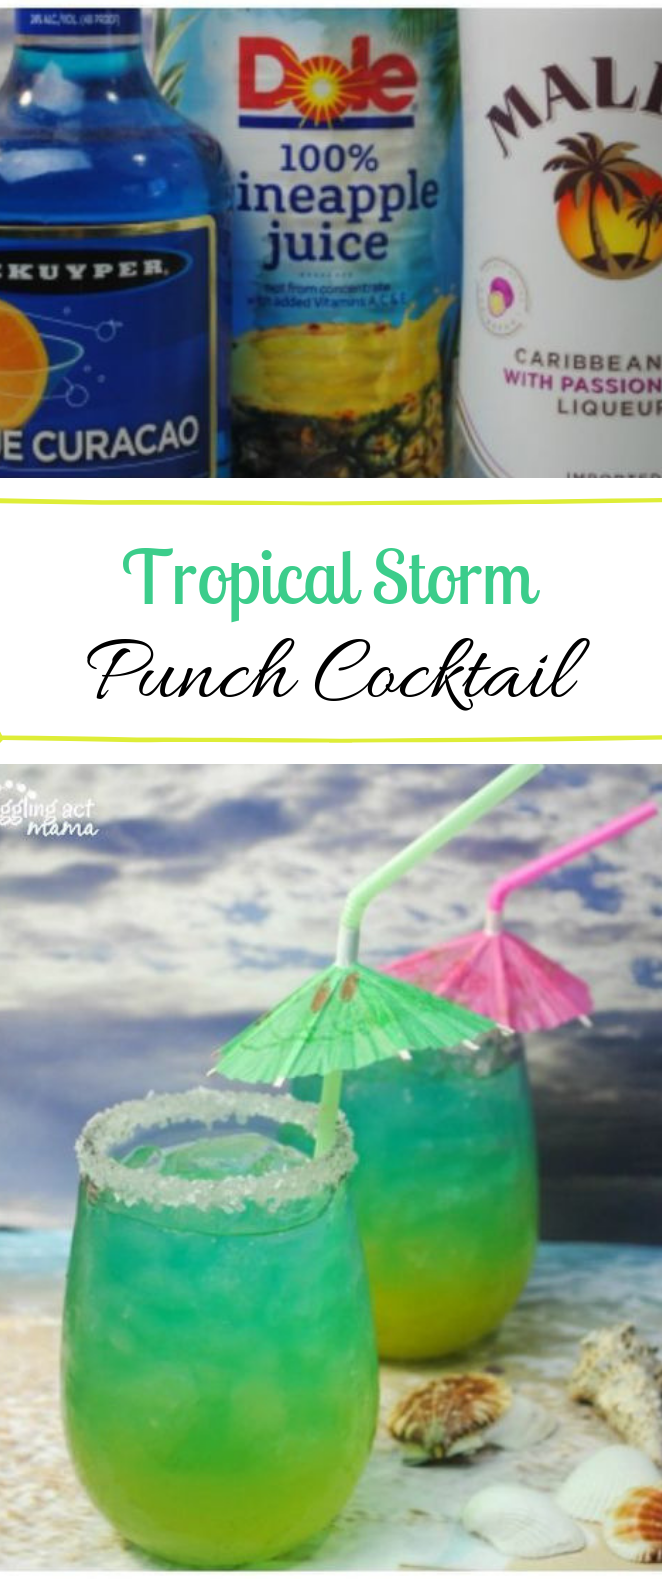 Tropical Storm Punch Cocktail #punch #cocktail